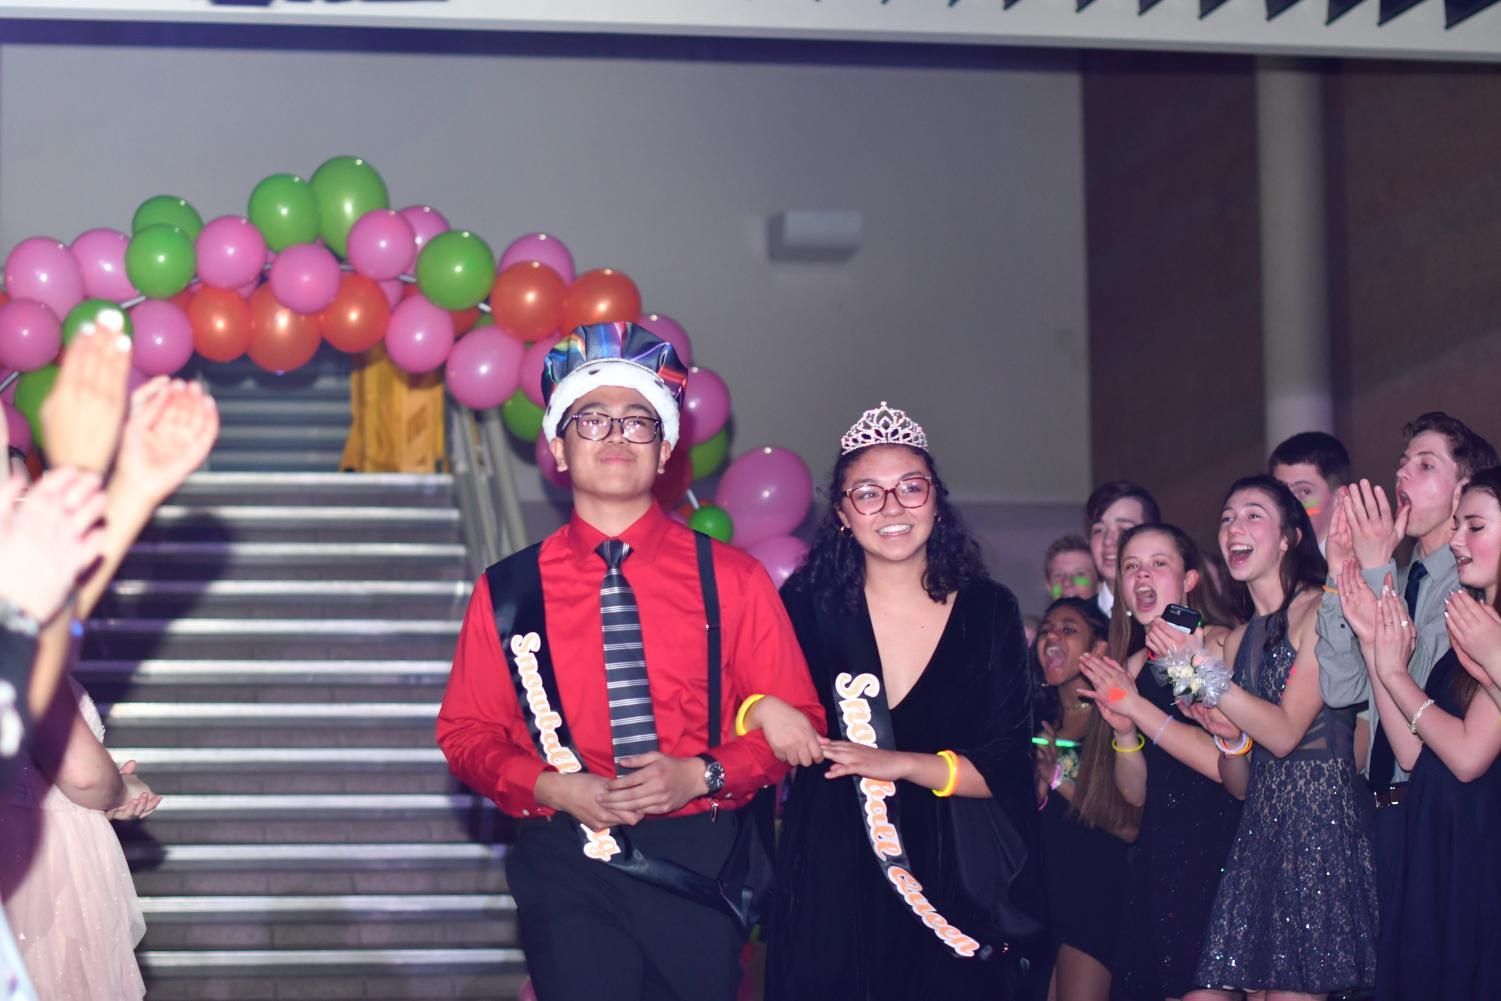 Erika Hartel 12 and Josiah Guerrero 12 accepting their crowns and sashes at the glowball dance after being announced Snowball King and Queen at the school's assembly the day before.